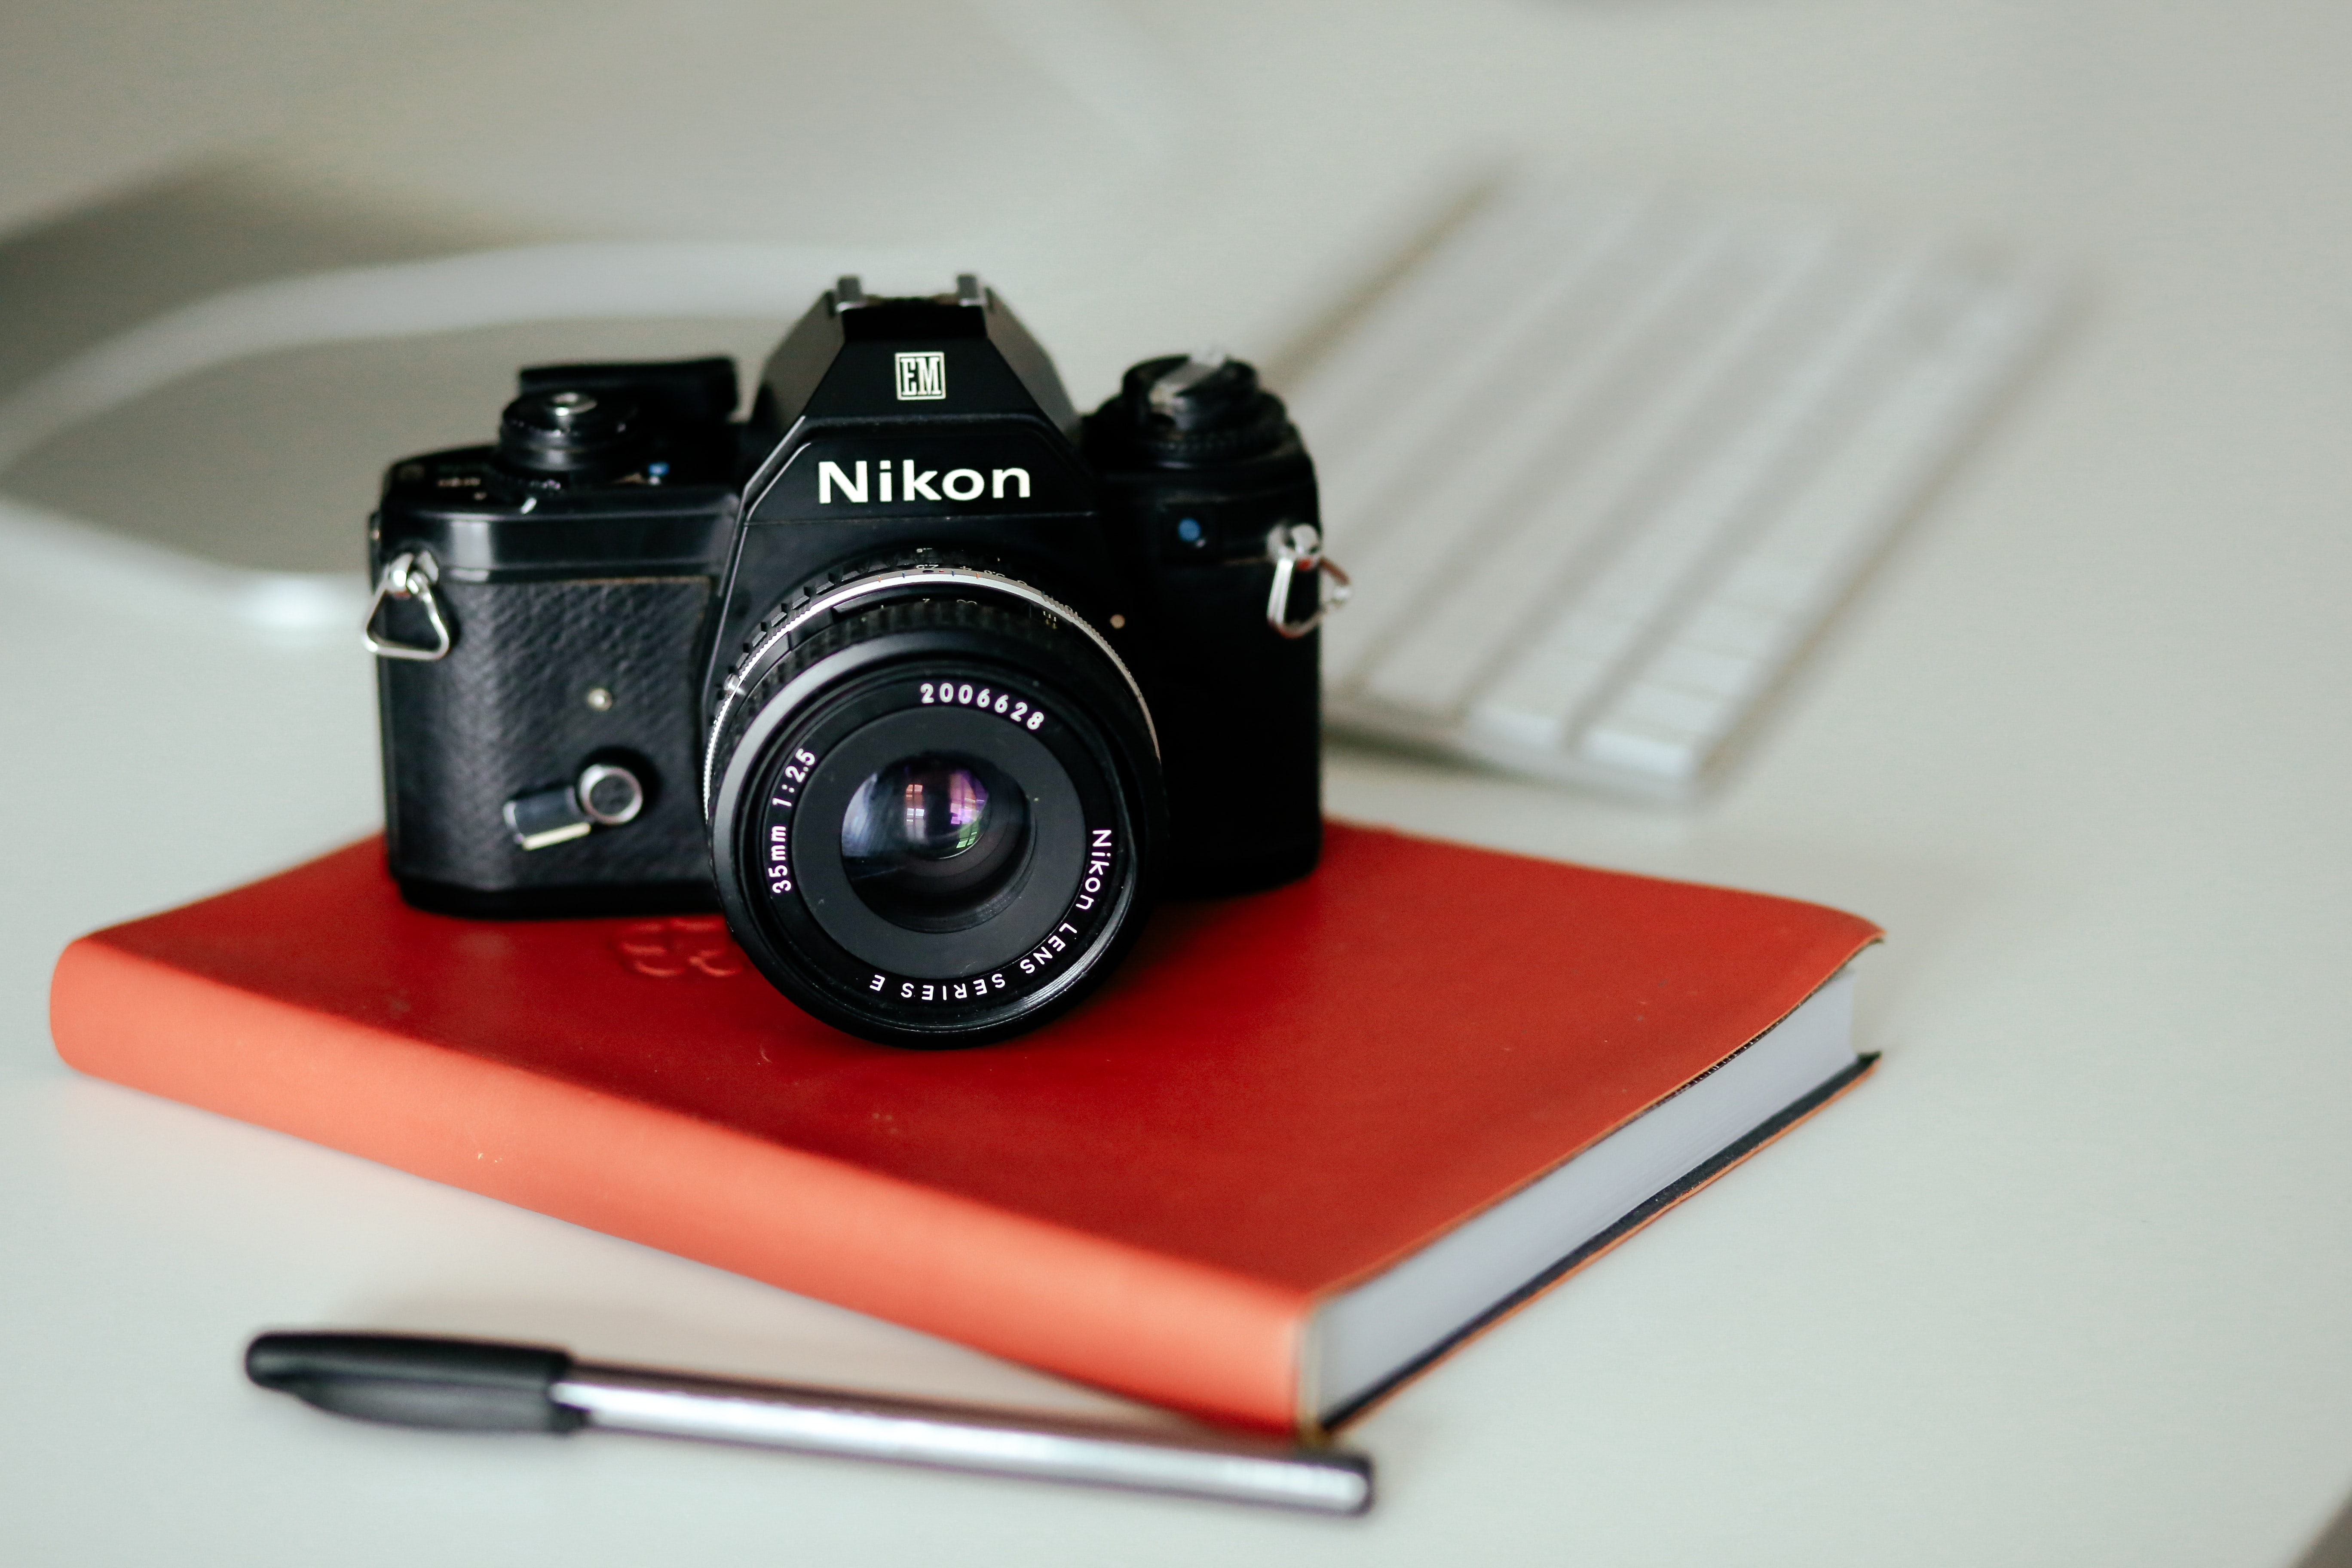 Nikon camera with 35mm lens on a red book beside a black pen and an apple keyboard